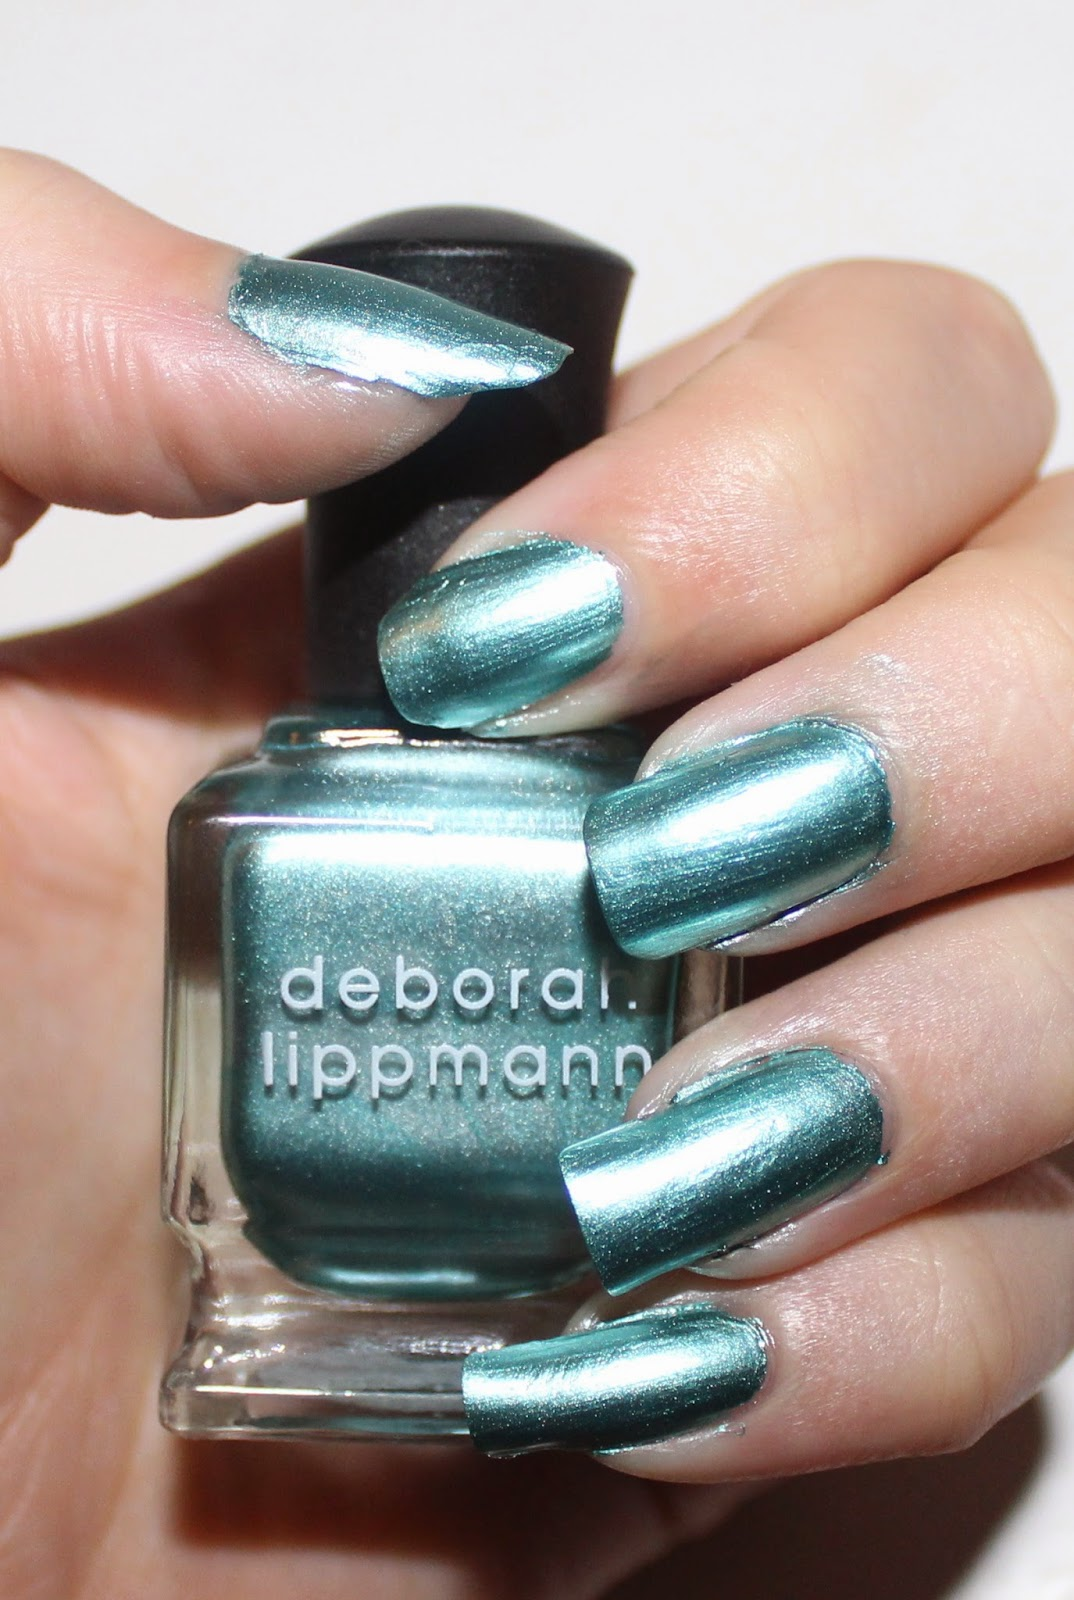 Deborah Lippmann I'll Take Manhattan